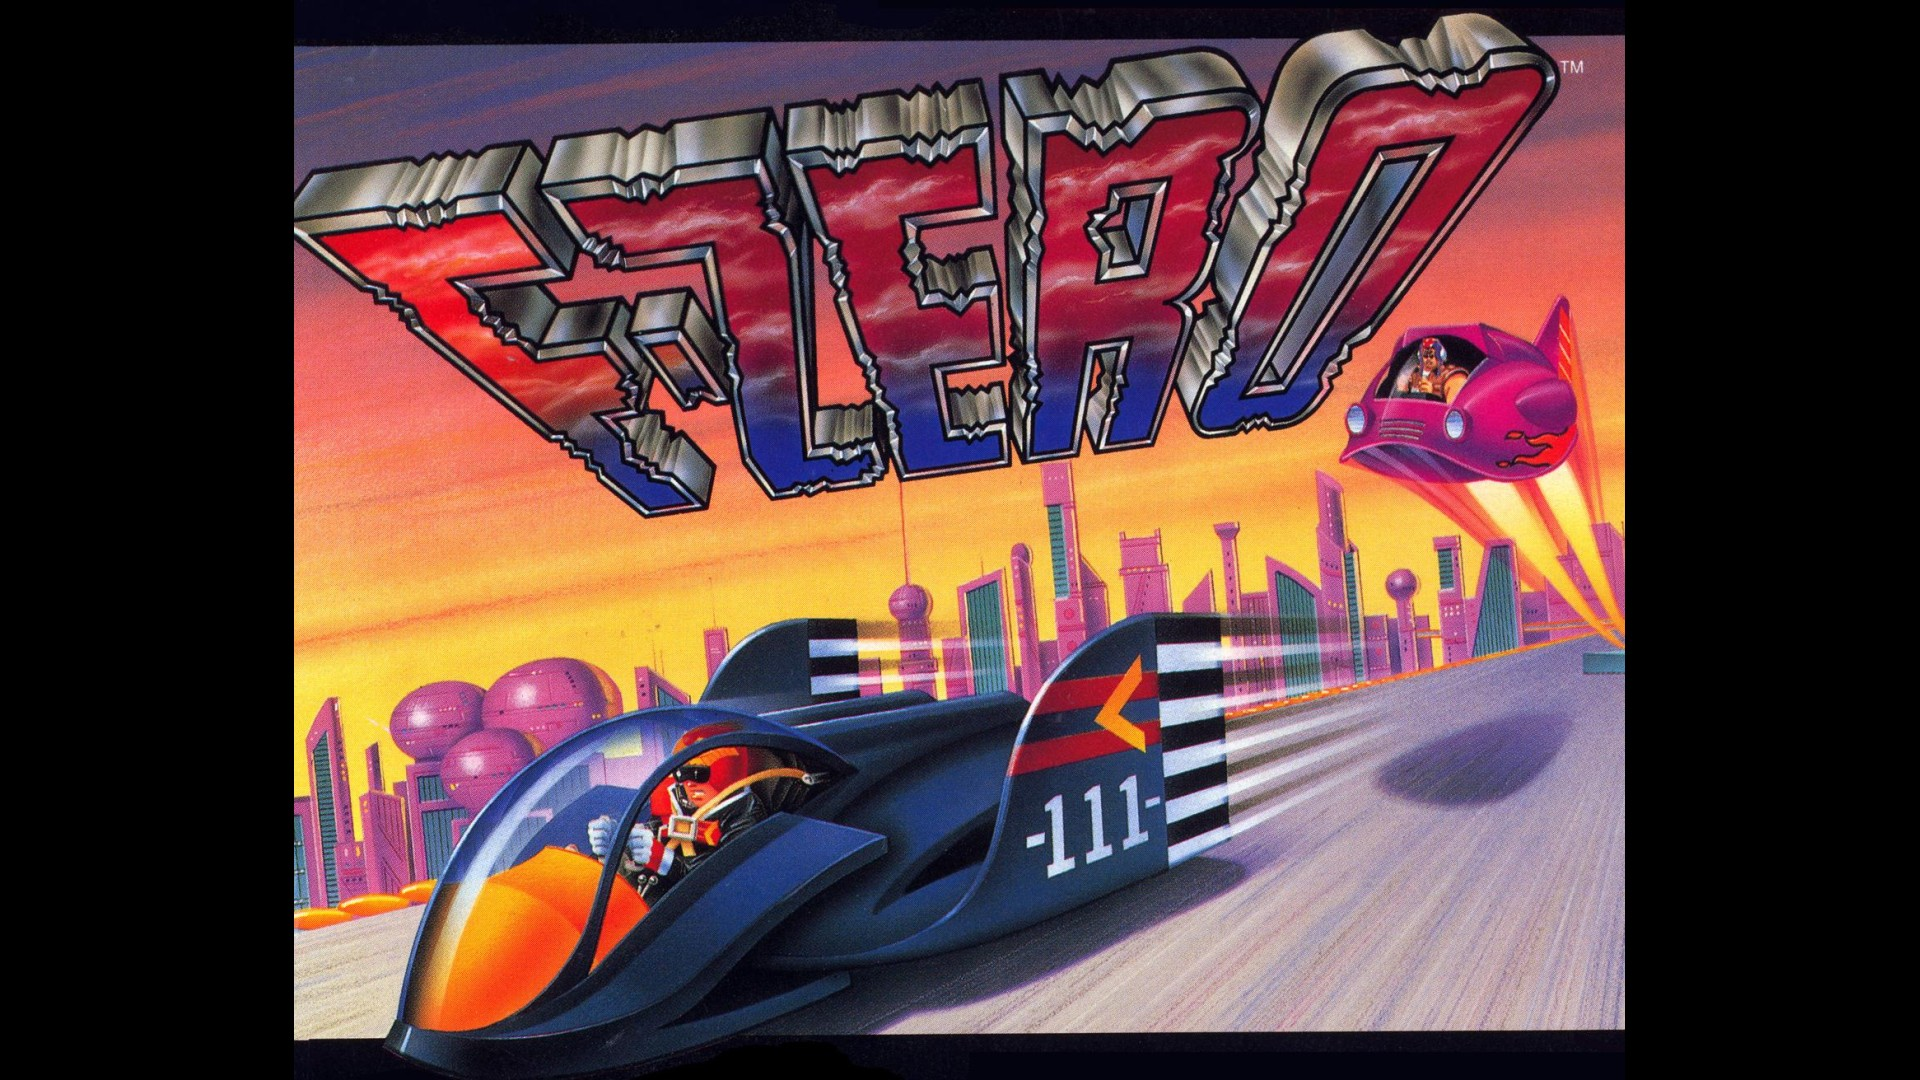 f zero big blue wallpaper - photo #15